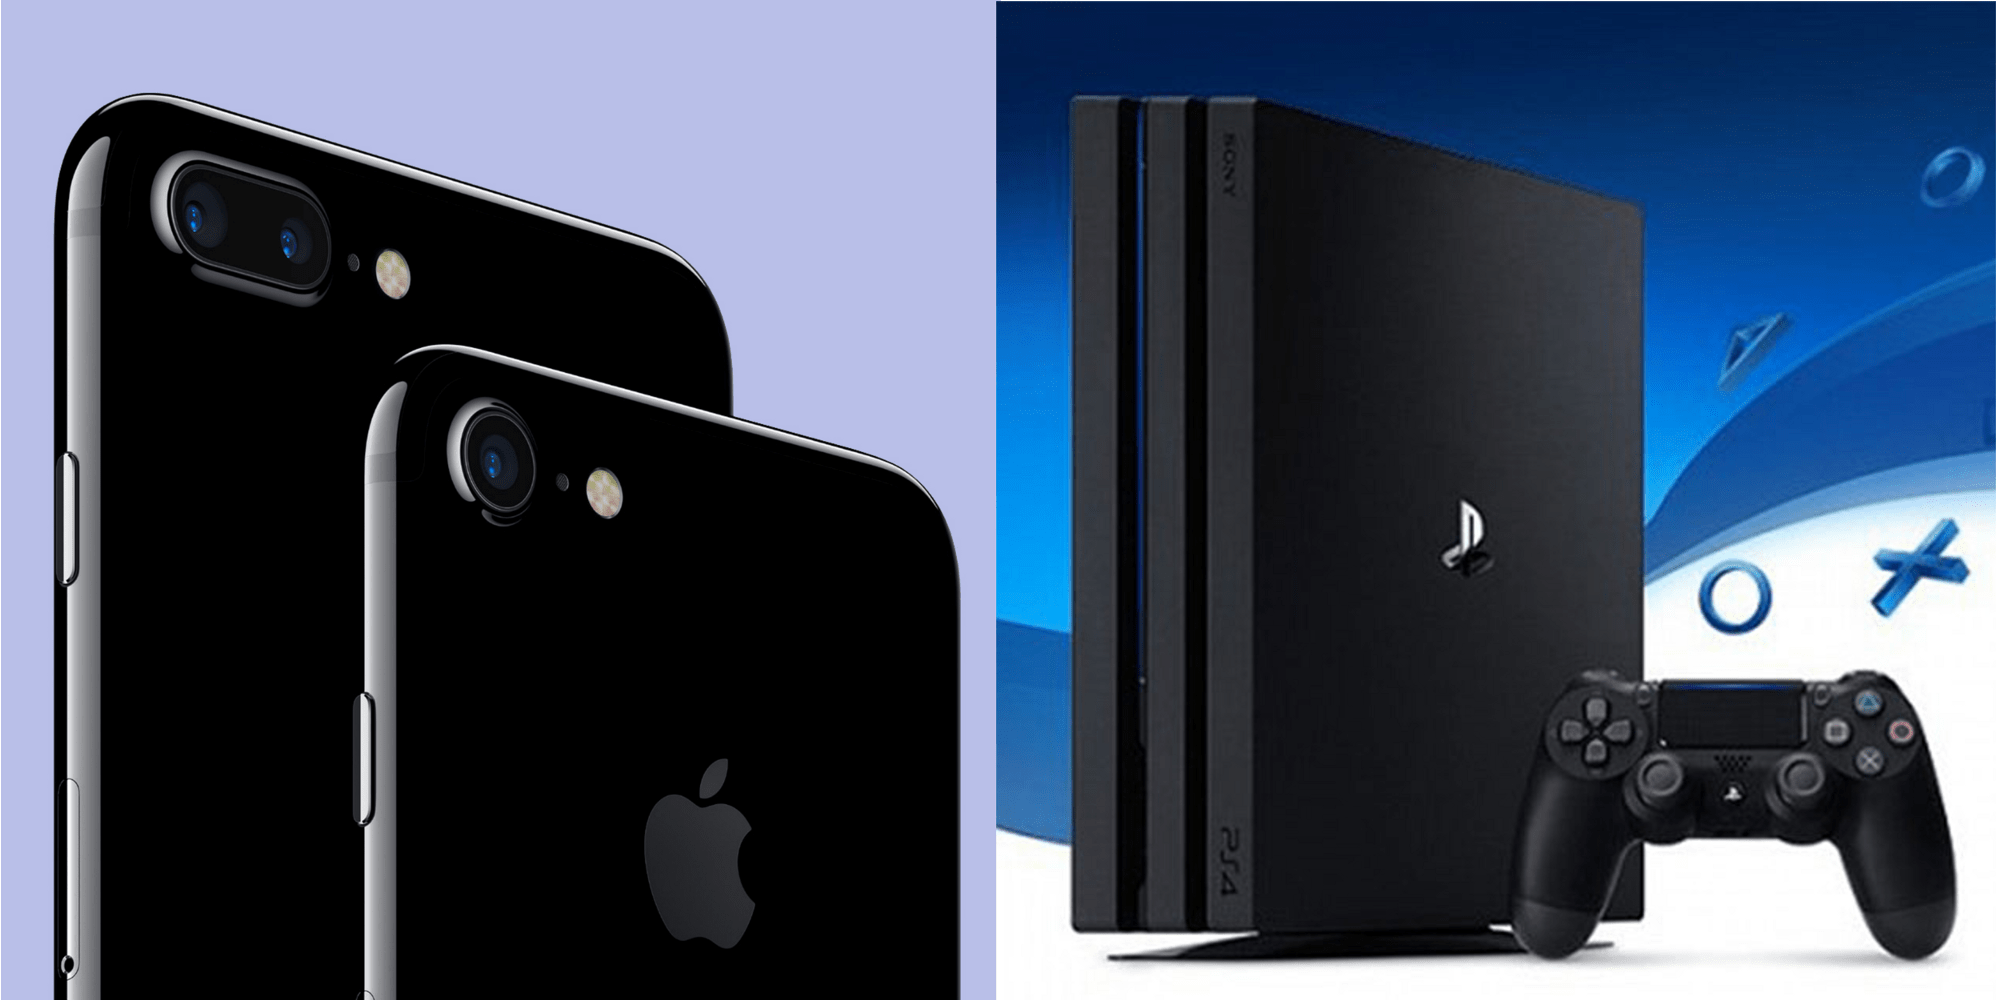 The Big News Surrounding The PS4 Pro and iPhone 7 Isn't What They Have — It's What They Don't